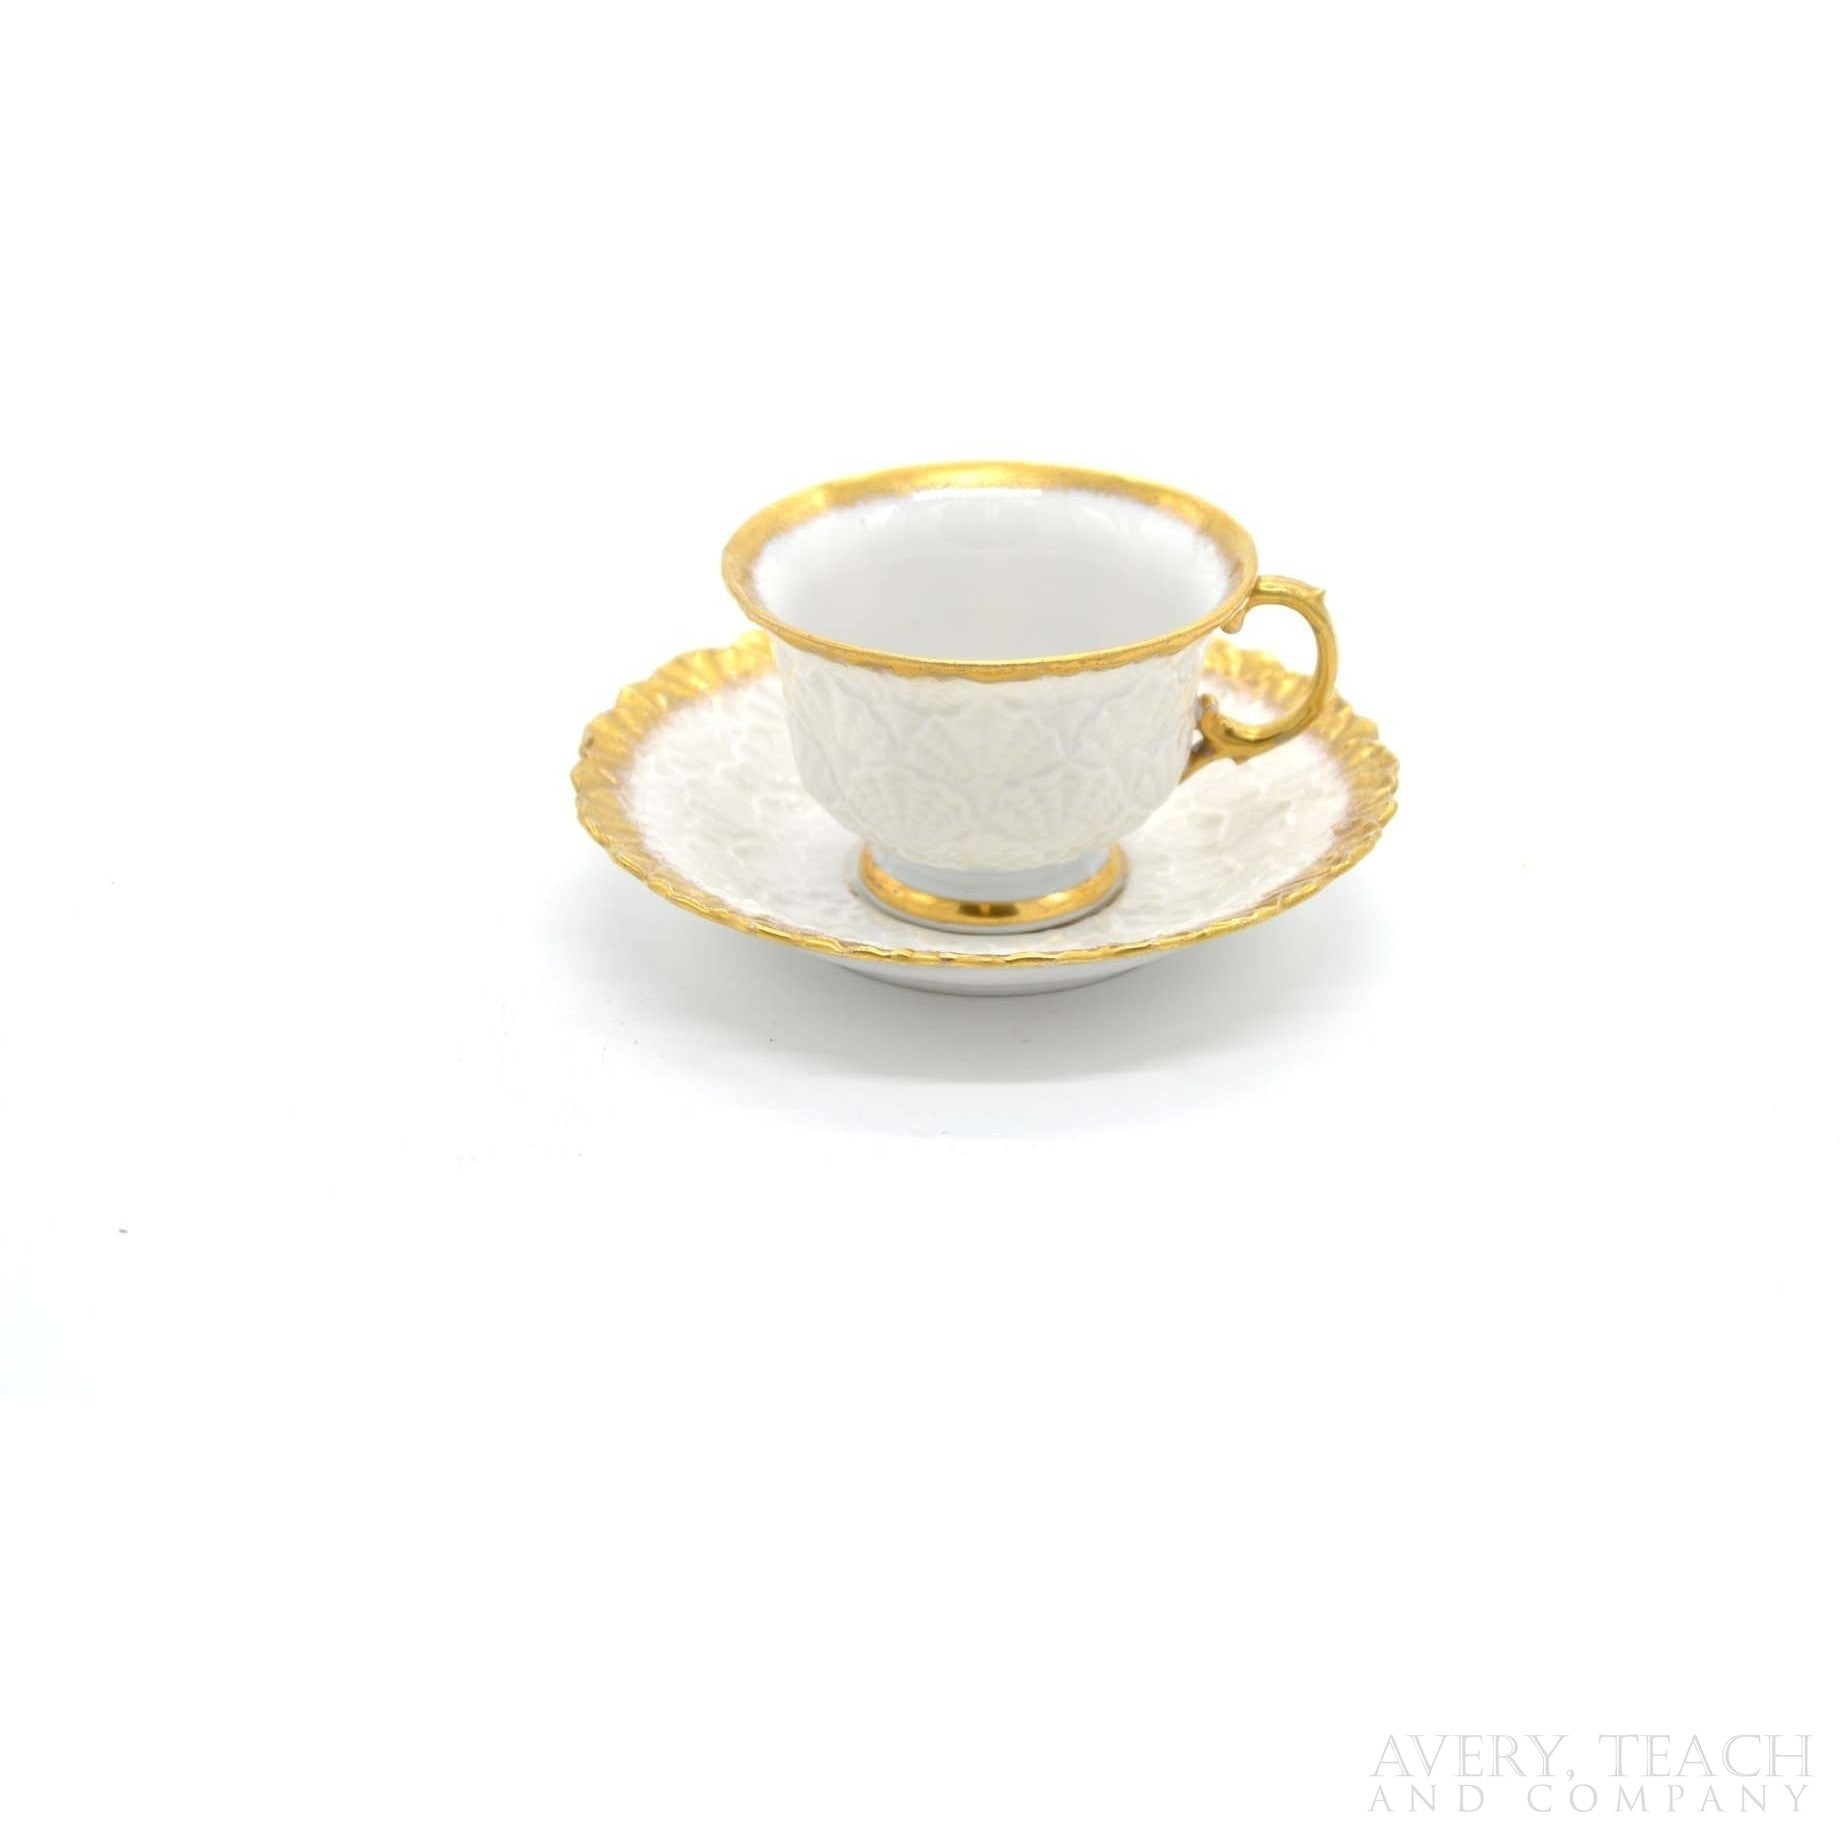 Meissen Vintage Gold Trim Teacup and Saucer - Avery, Teach and Co.